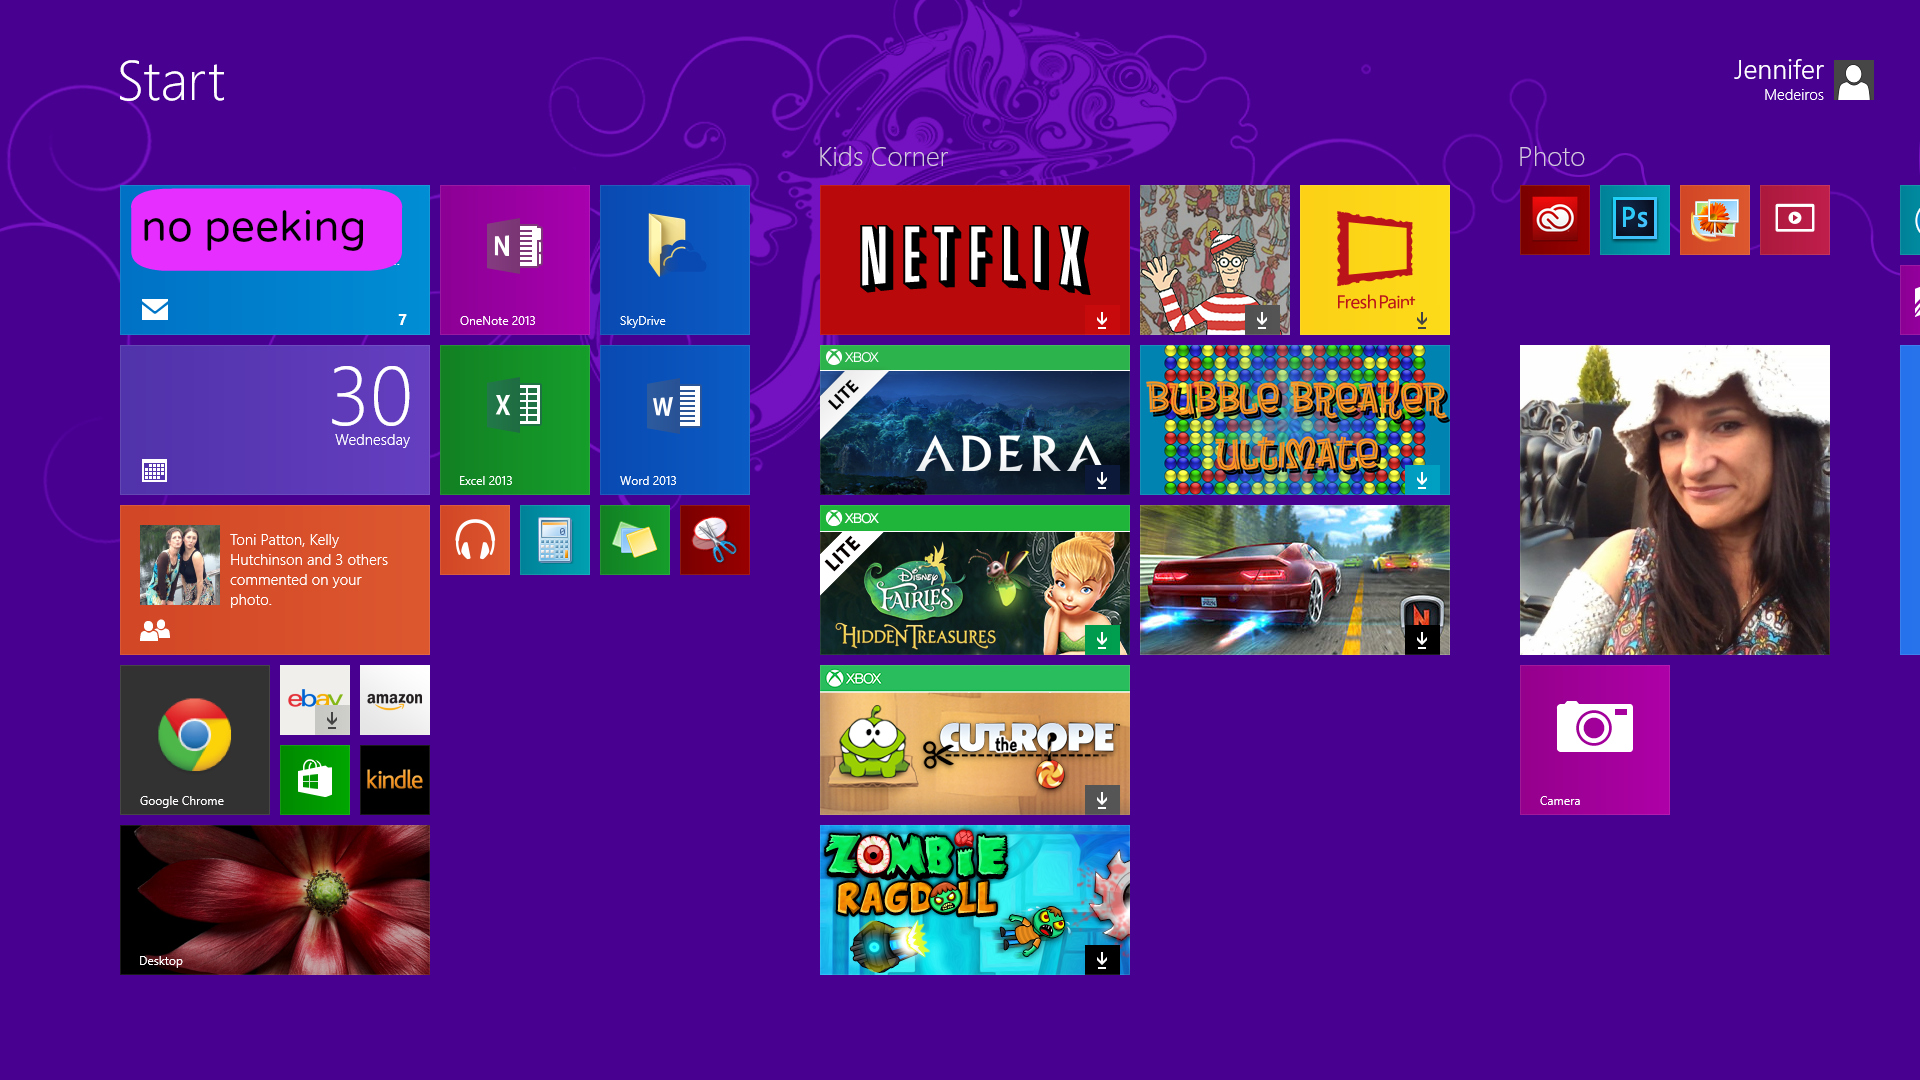 Customizing Windows 8 #WindowsChampions #MomsGifts